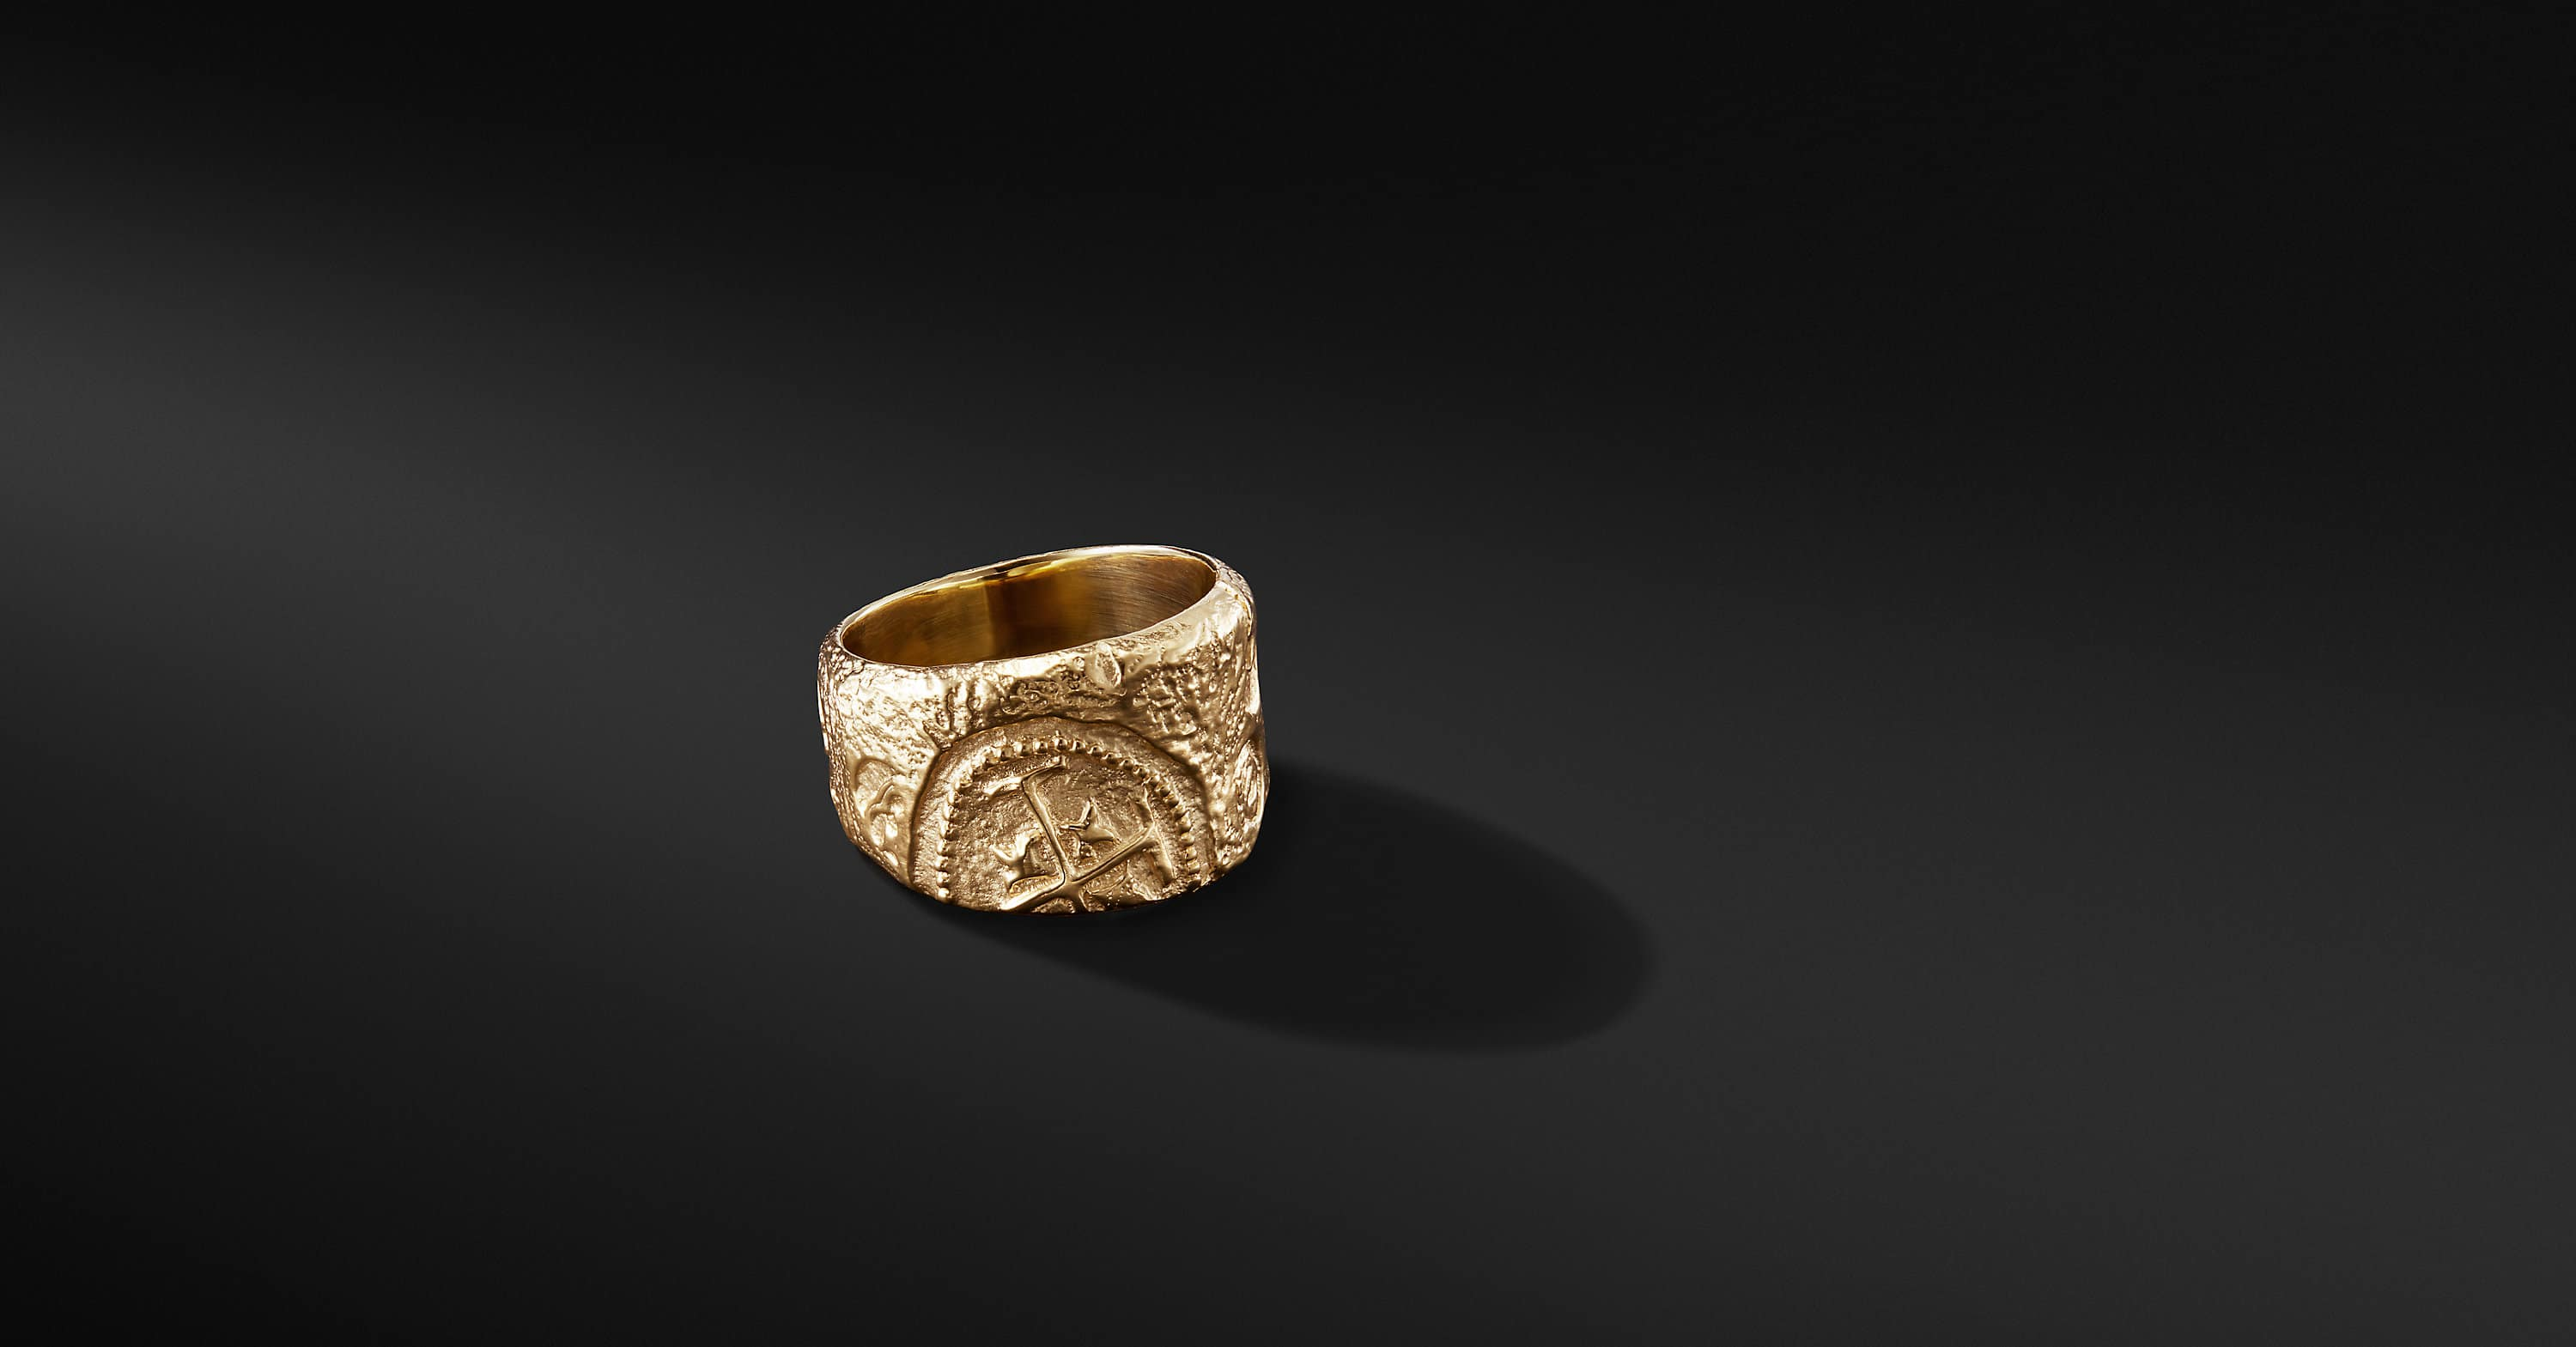 Shipwreck Cigar Band Ring in 22K Gold, 16mm